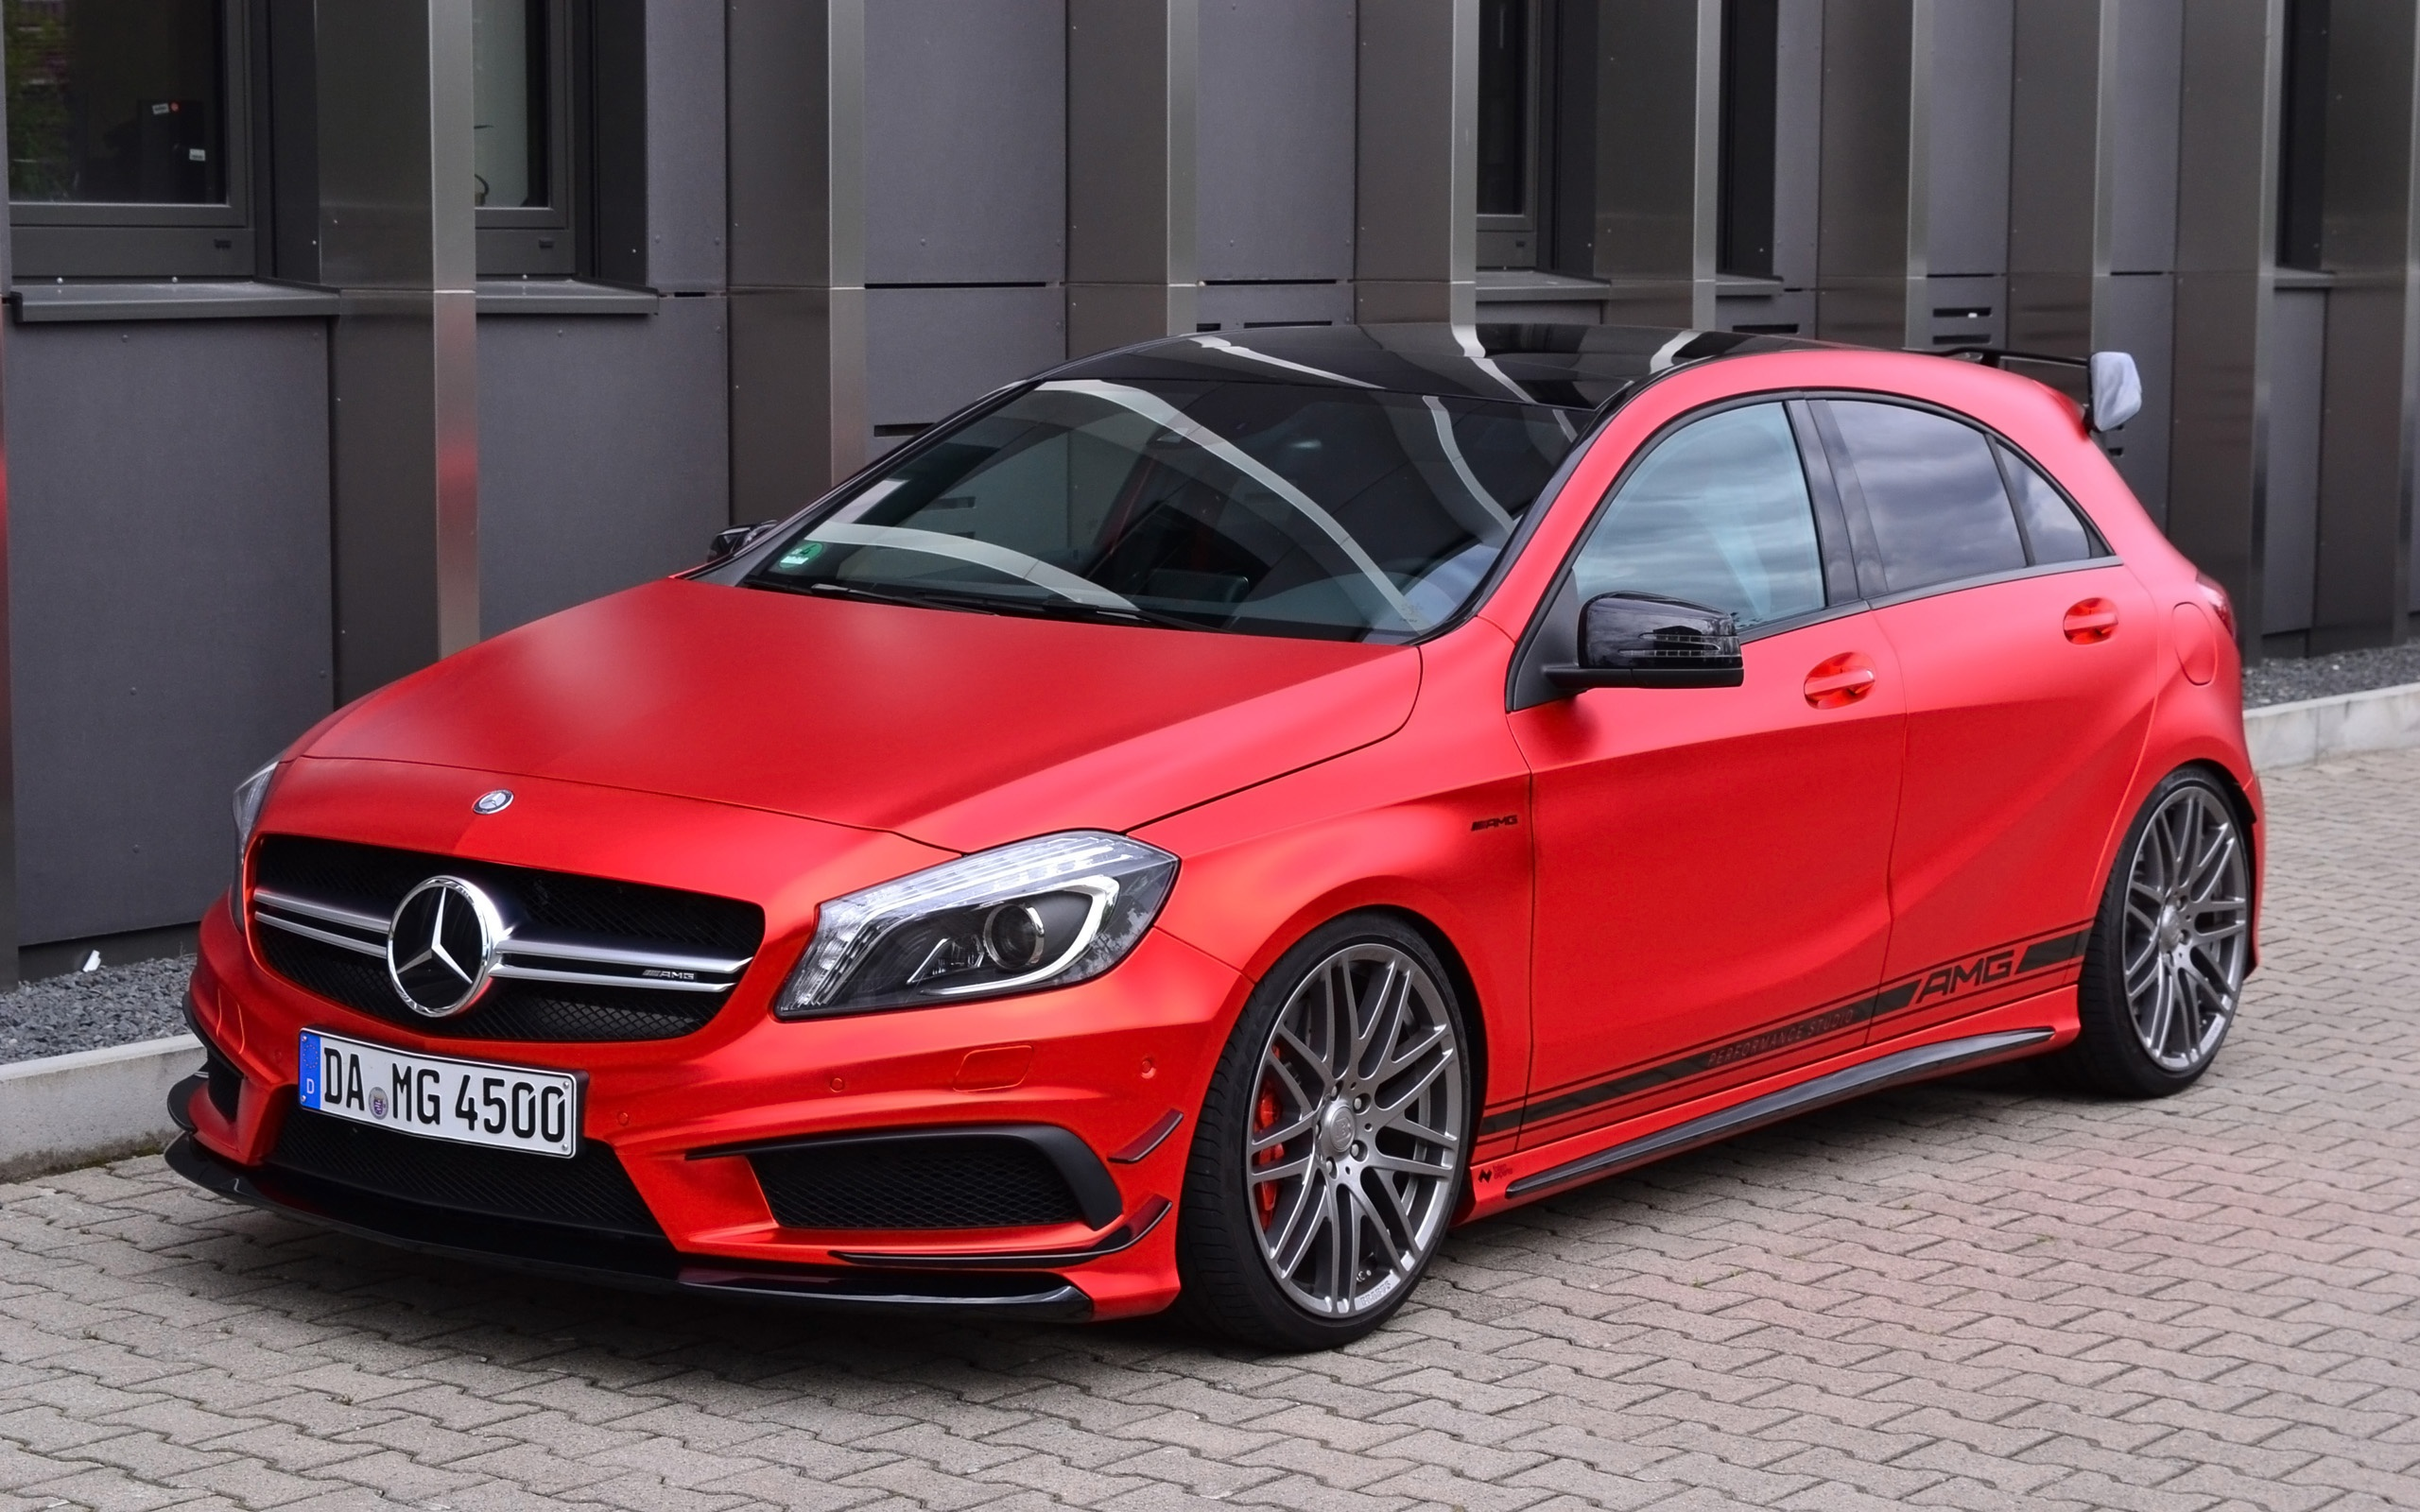 A45 Amg Modified Beautiful 2015 Folien Experte Mercedes Benz A45 Amg Static 7 2560×1600-1199 Of Unique A45 Amg Modified